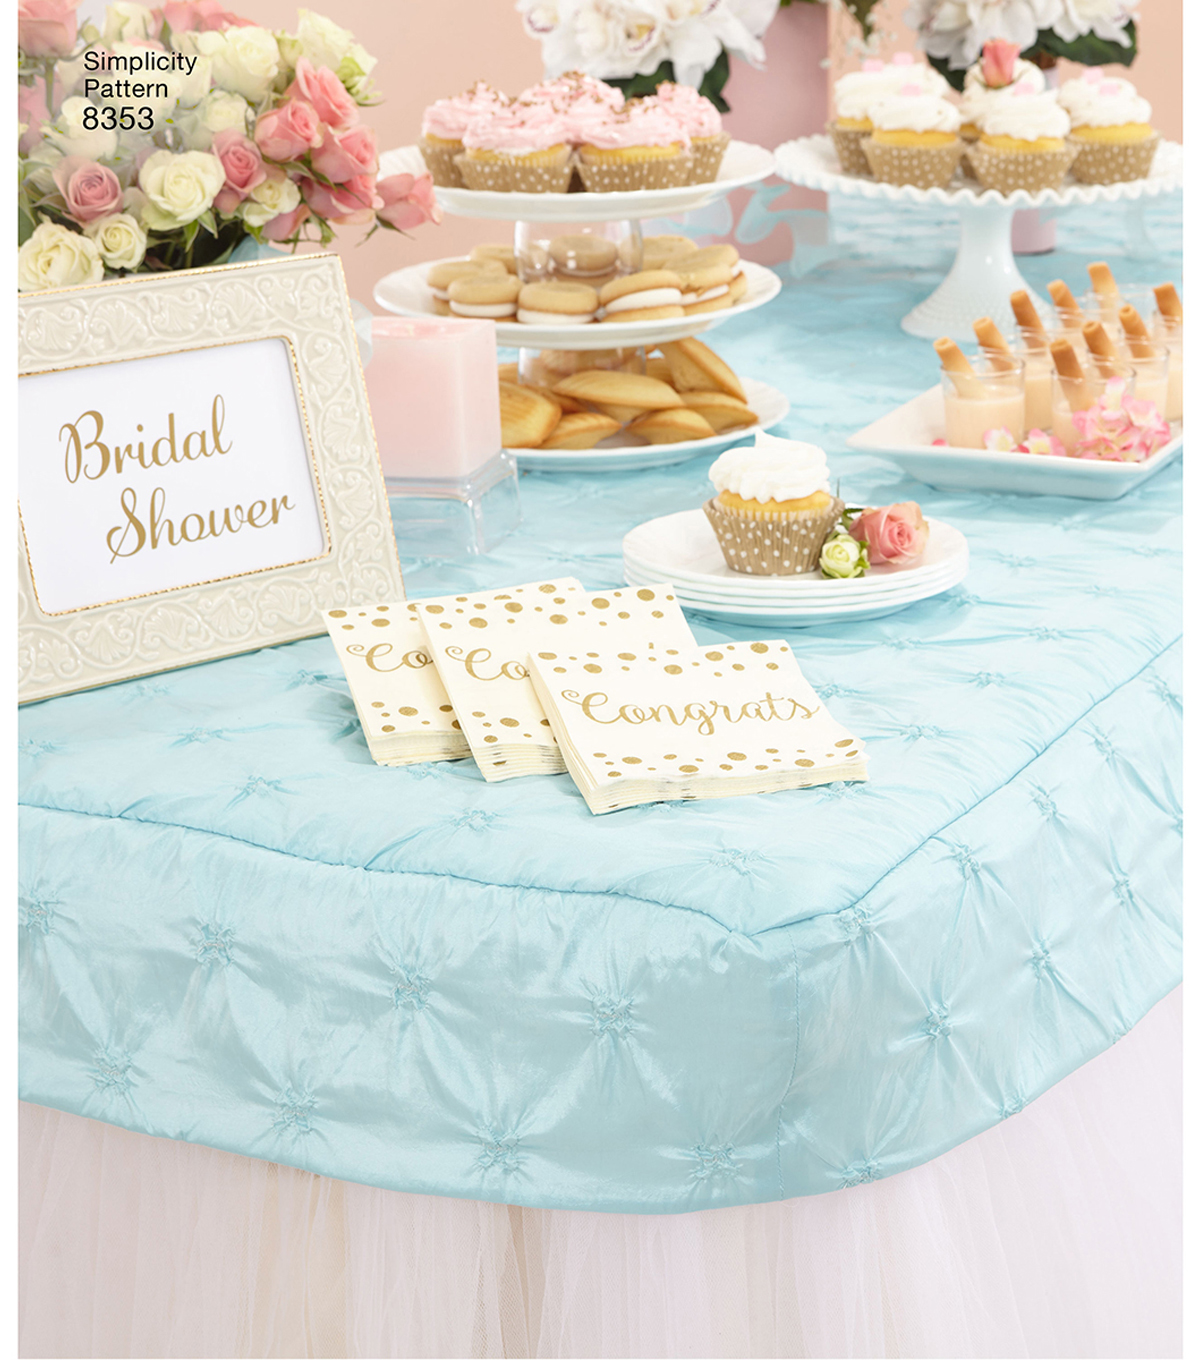 Simplicity Pattern 8353 Party Decor & Accessories